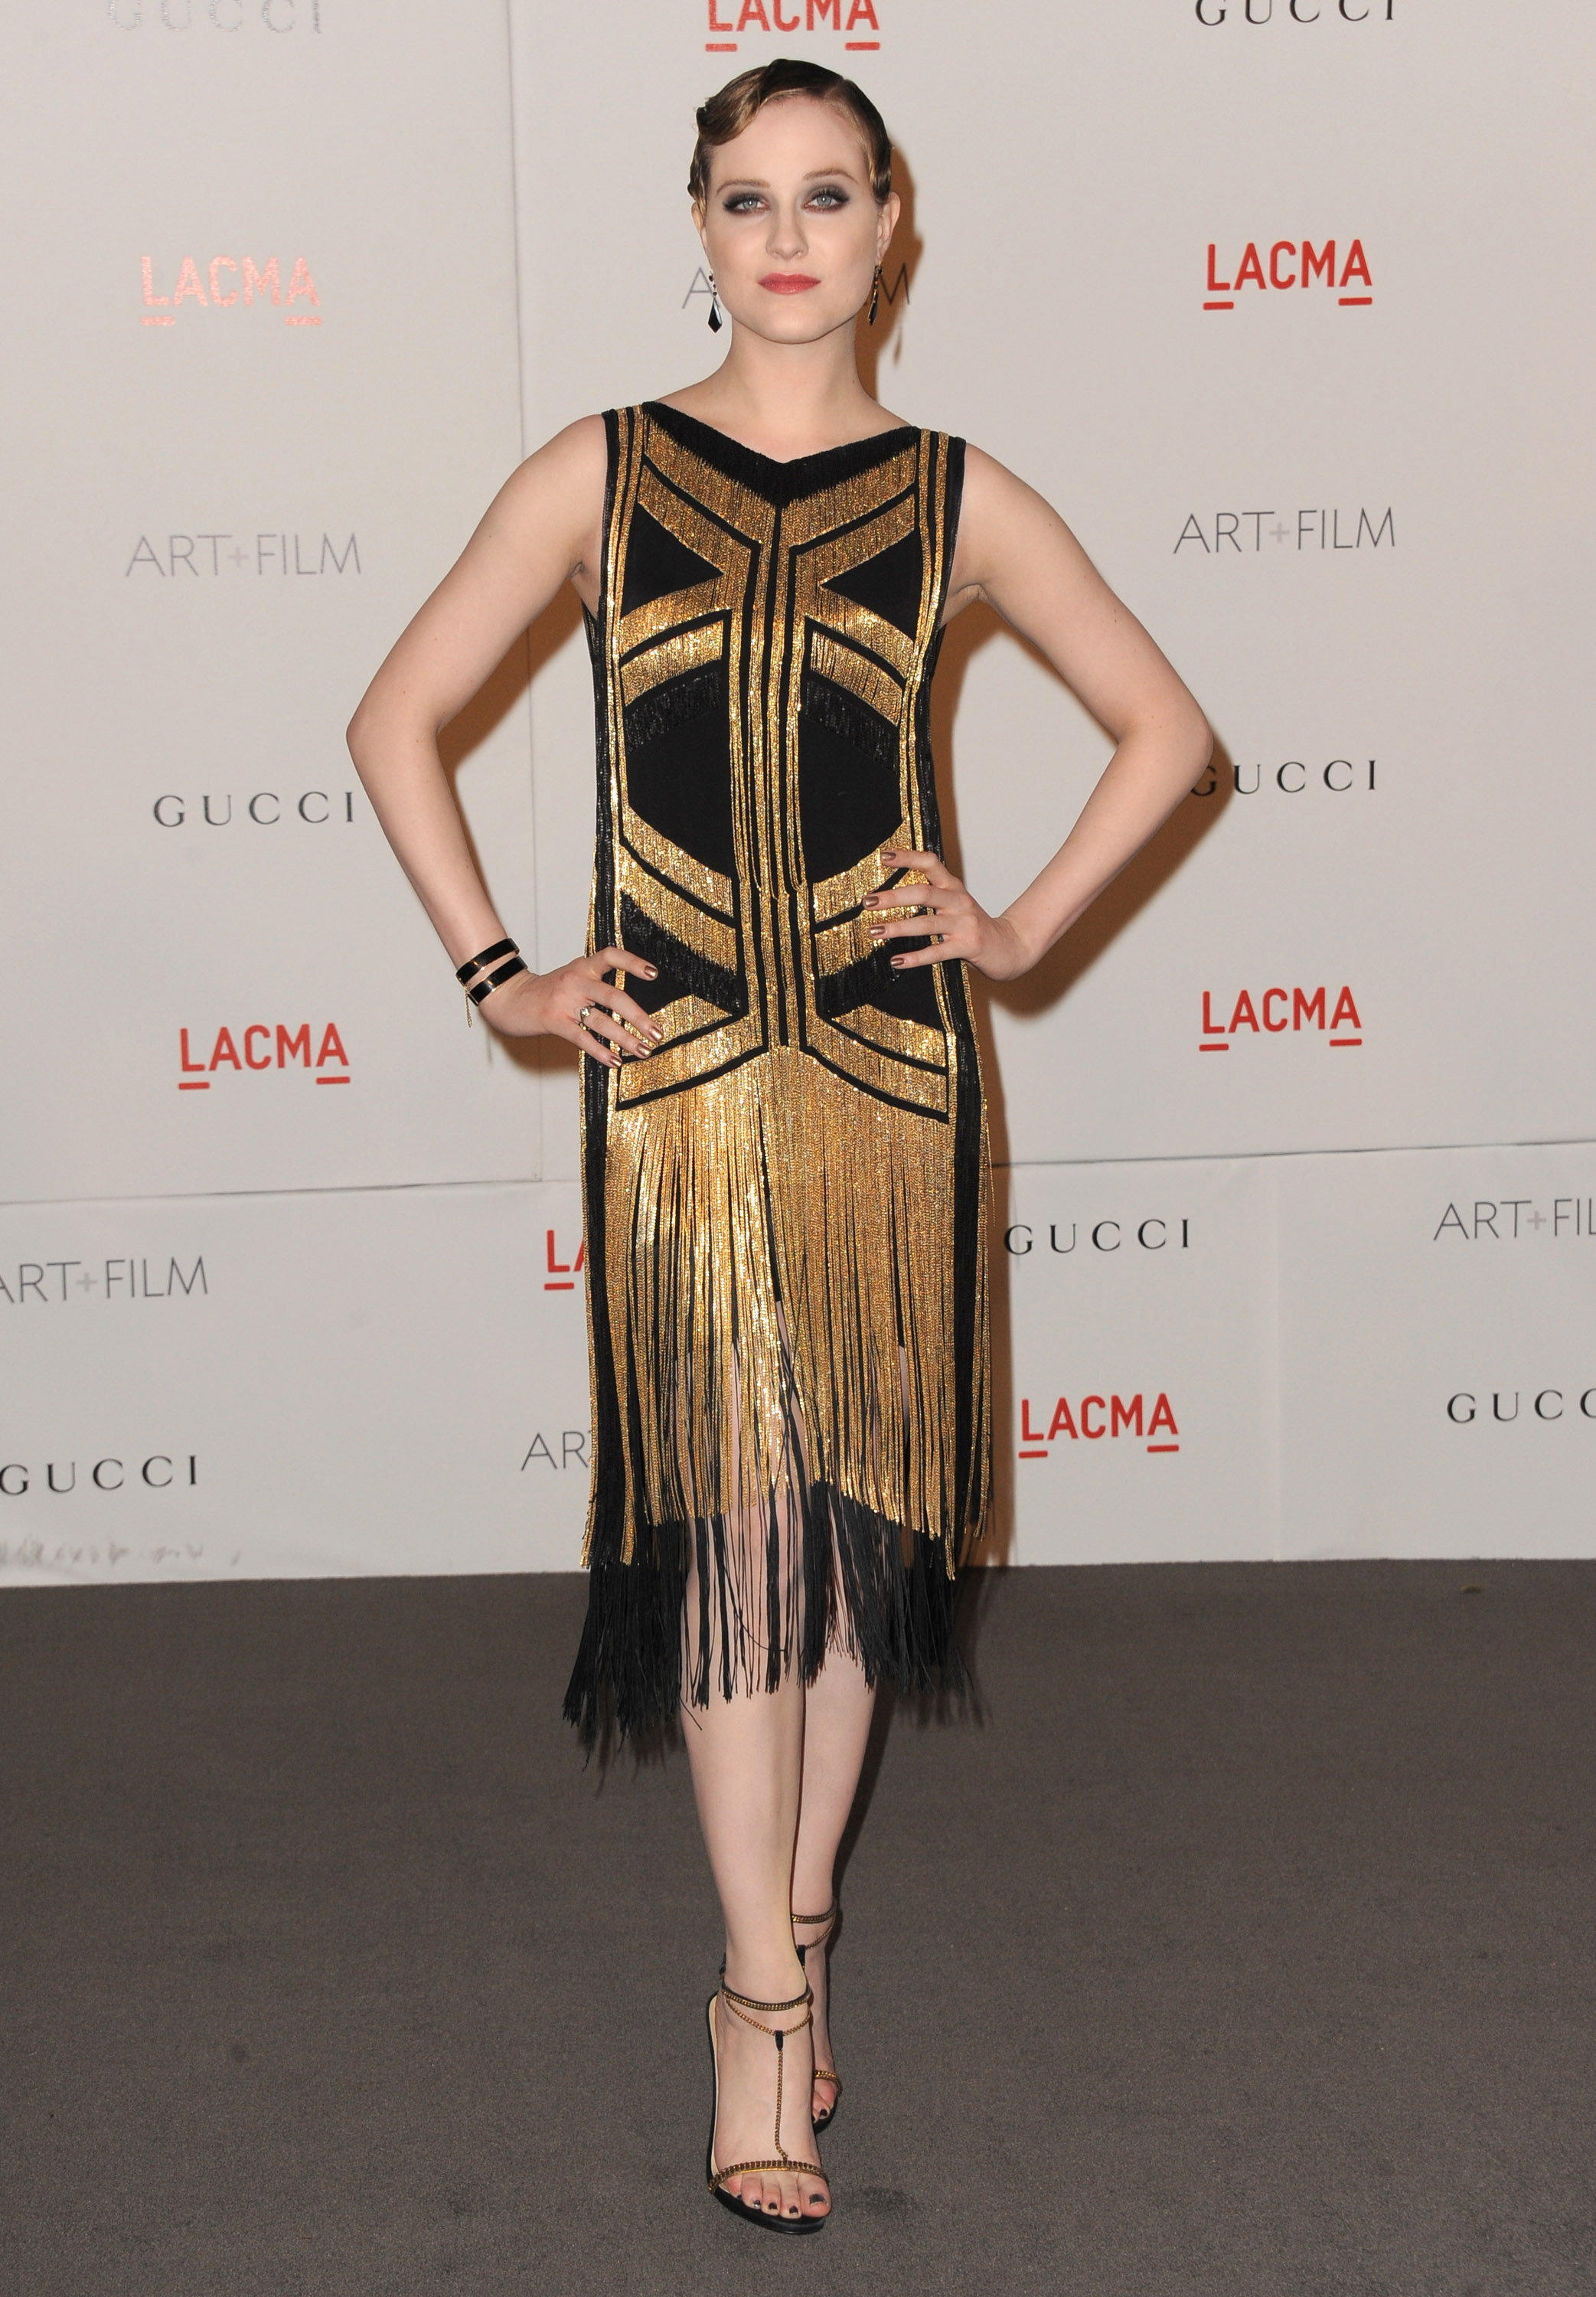 Evan Rachel Wood in Gucci.